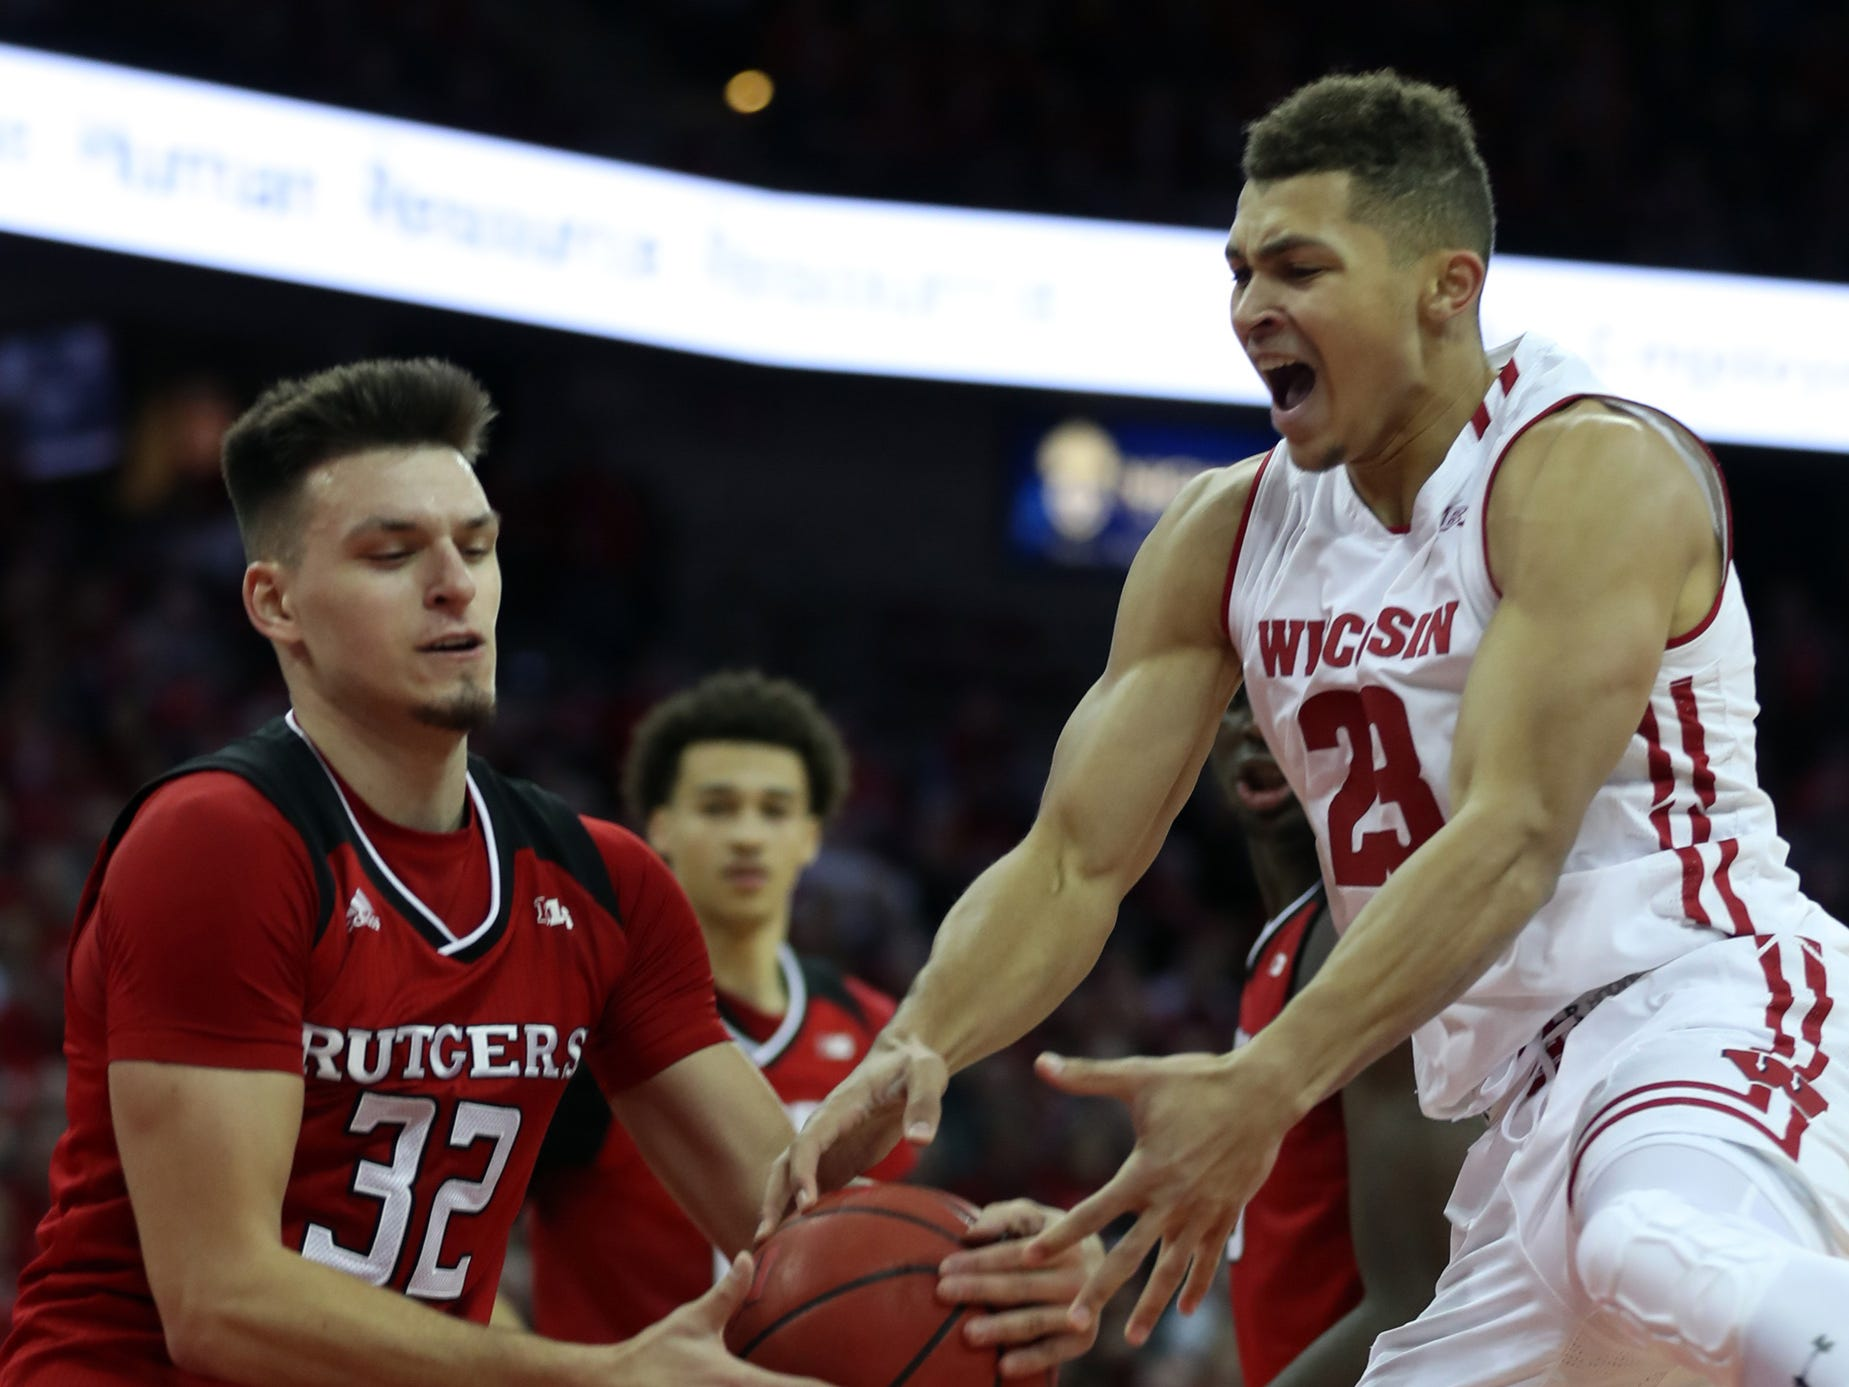 Kobe King of the Badgers has the ball stripped away by Peter Kiss of Rutgers on Monday night.